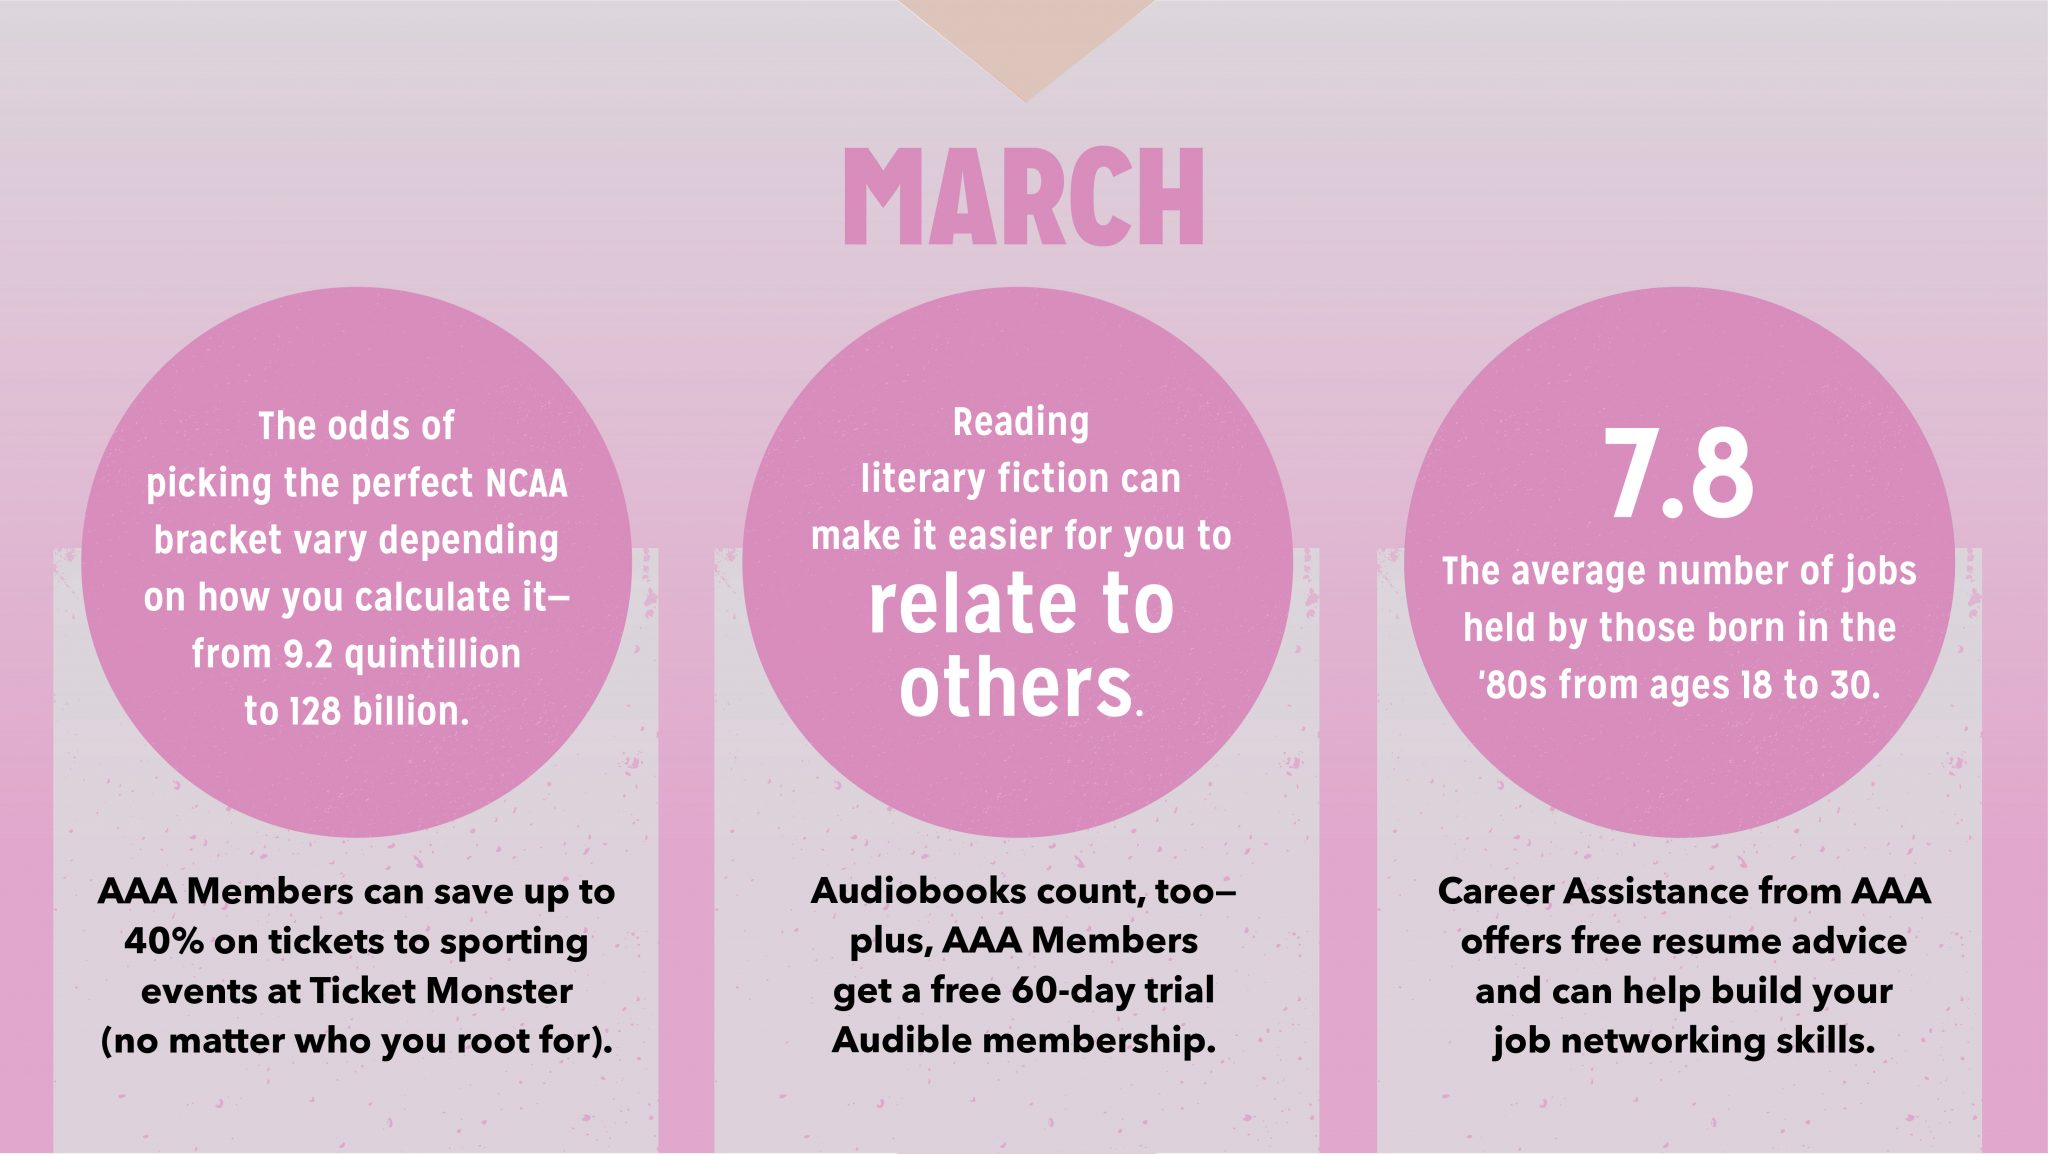 aaa-membership-benefits-march